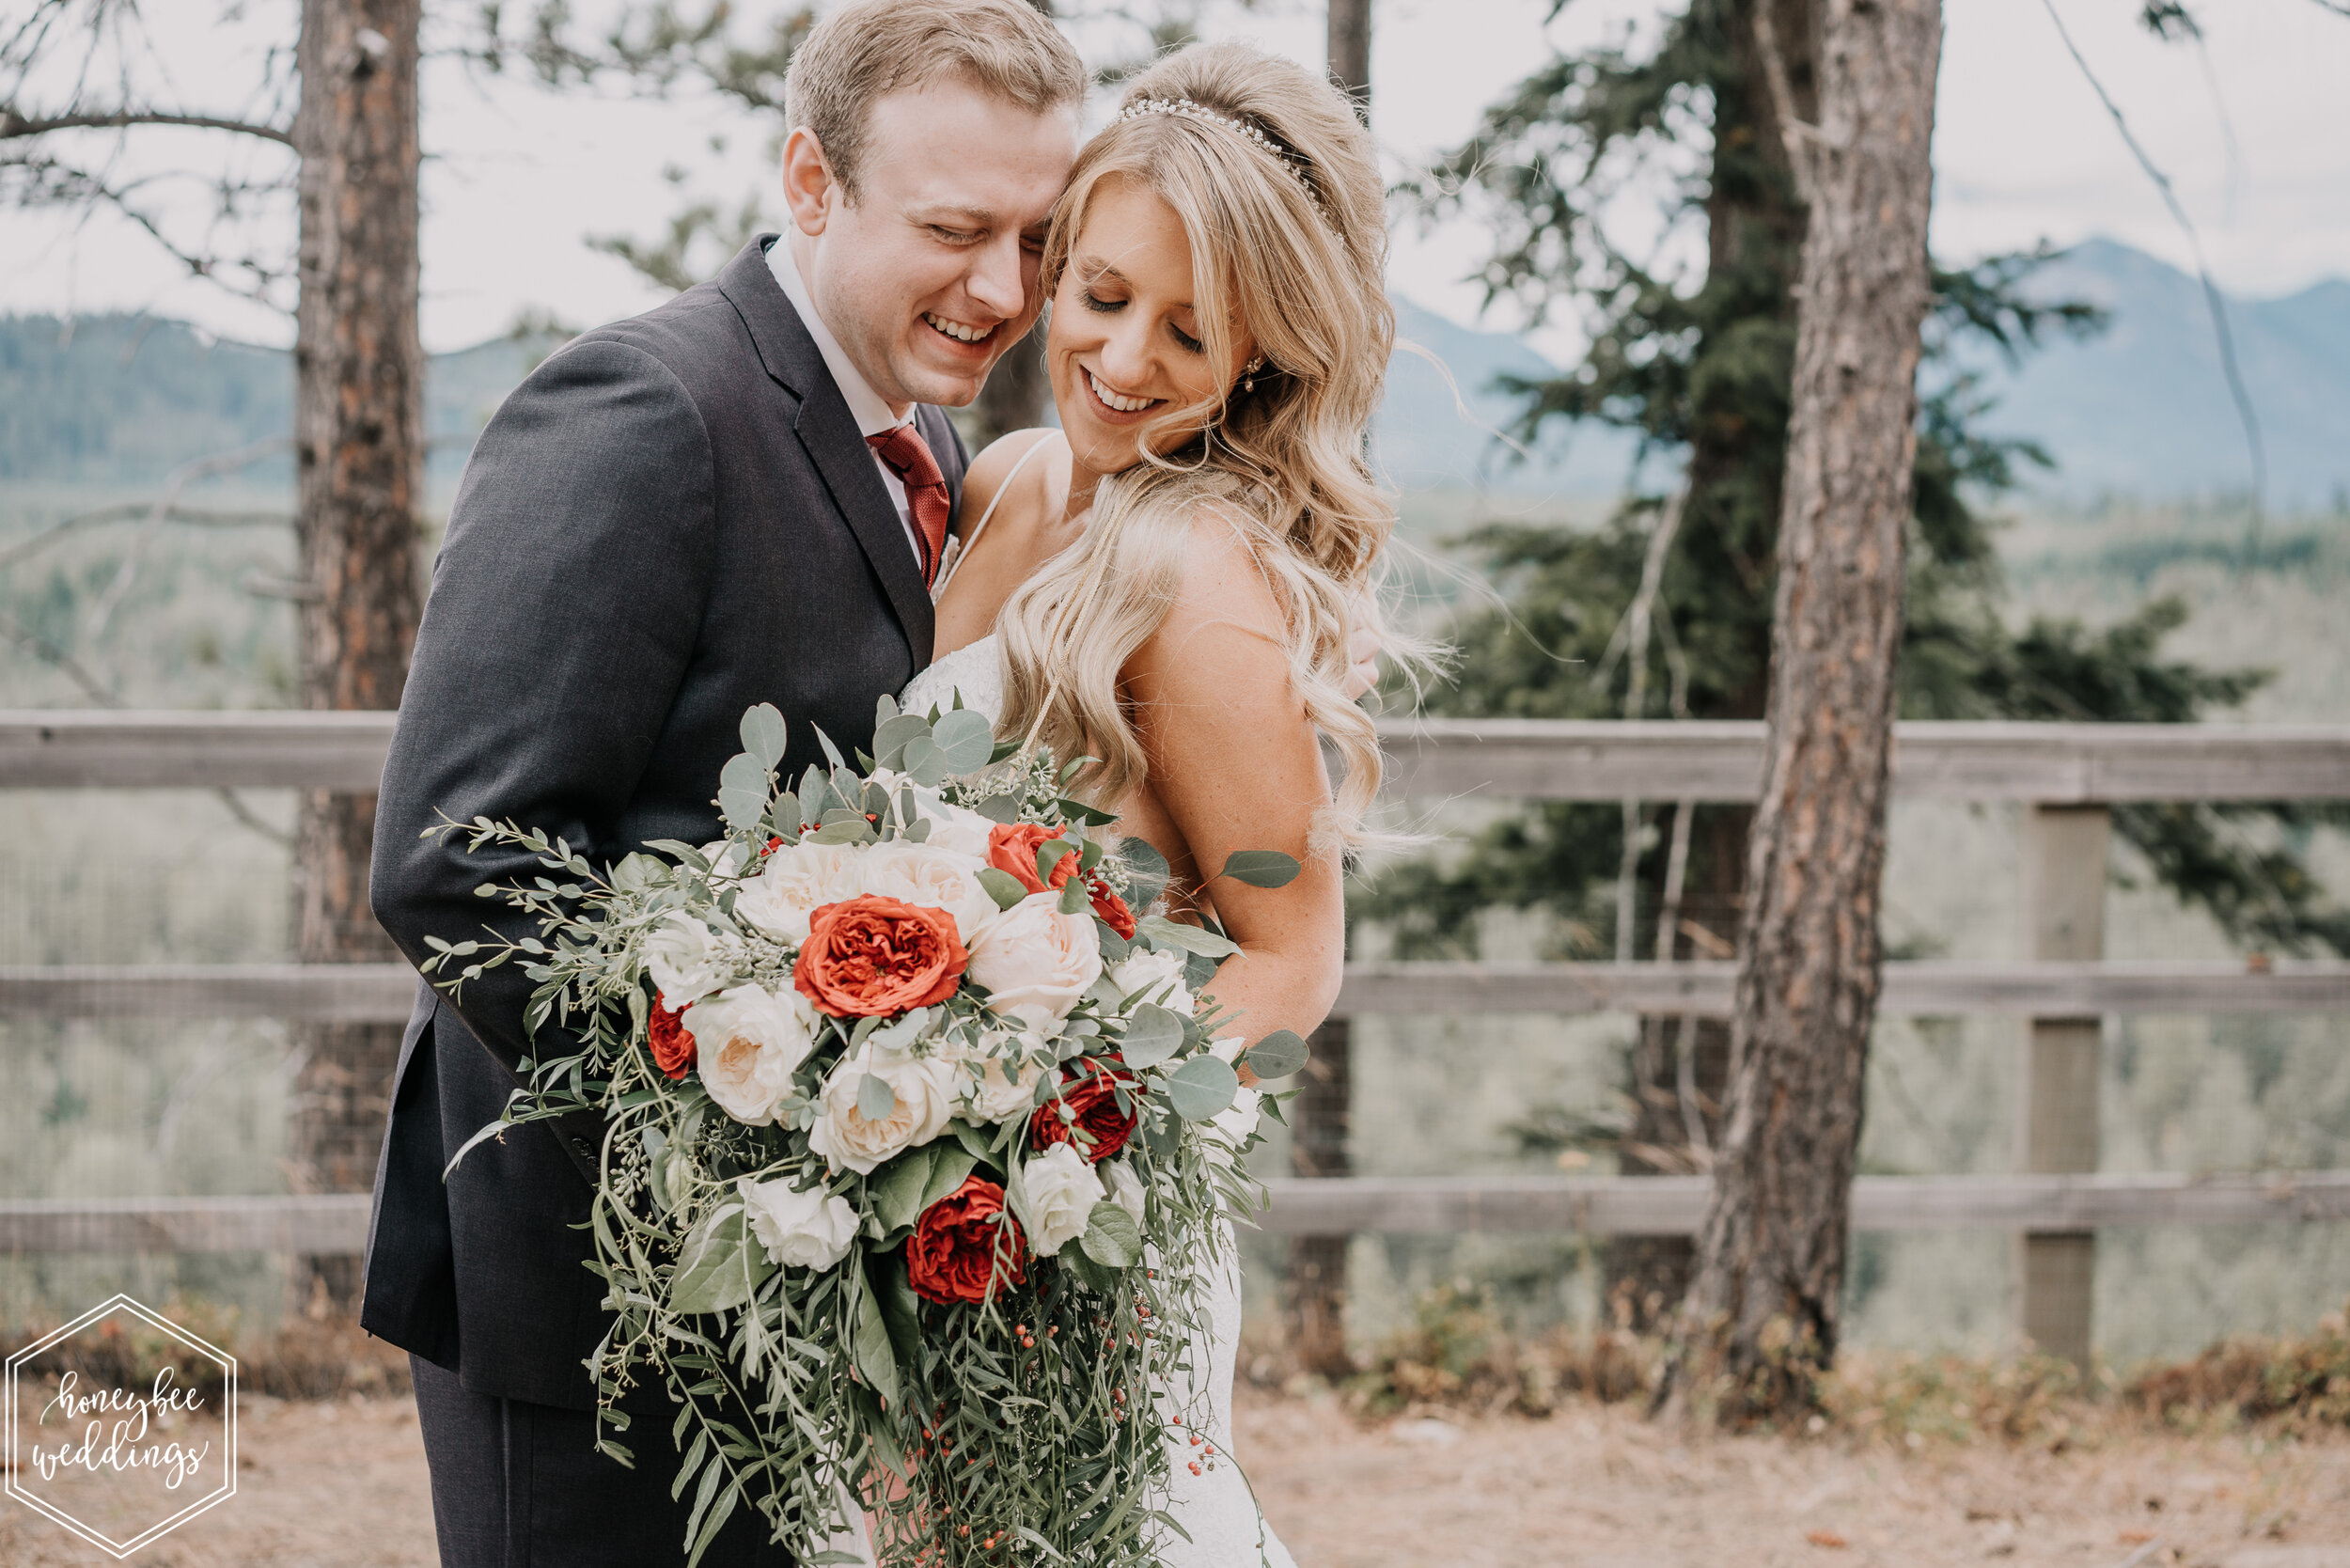 0026Swiftwater Cellars Wedding_Cle Elum Wedding_Montana Wedding Photographer_Kat & Kyle_September 15, 2018-291.jpg